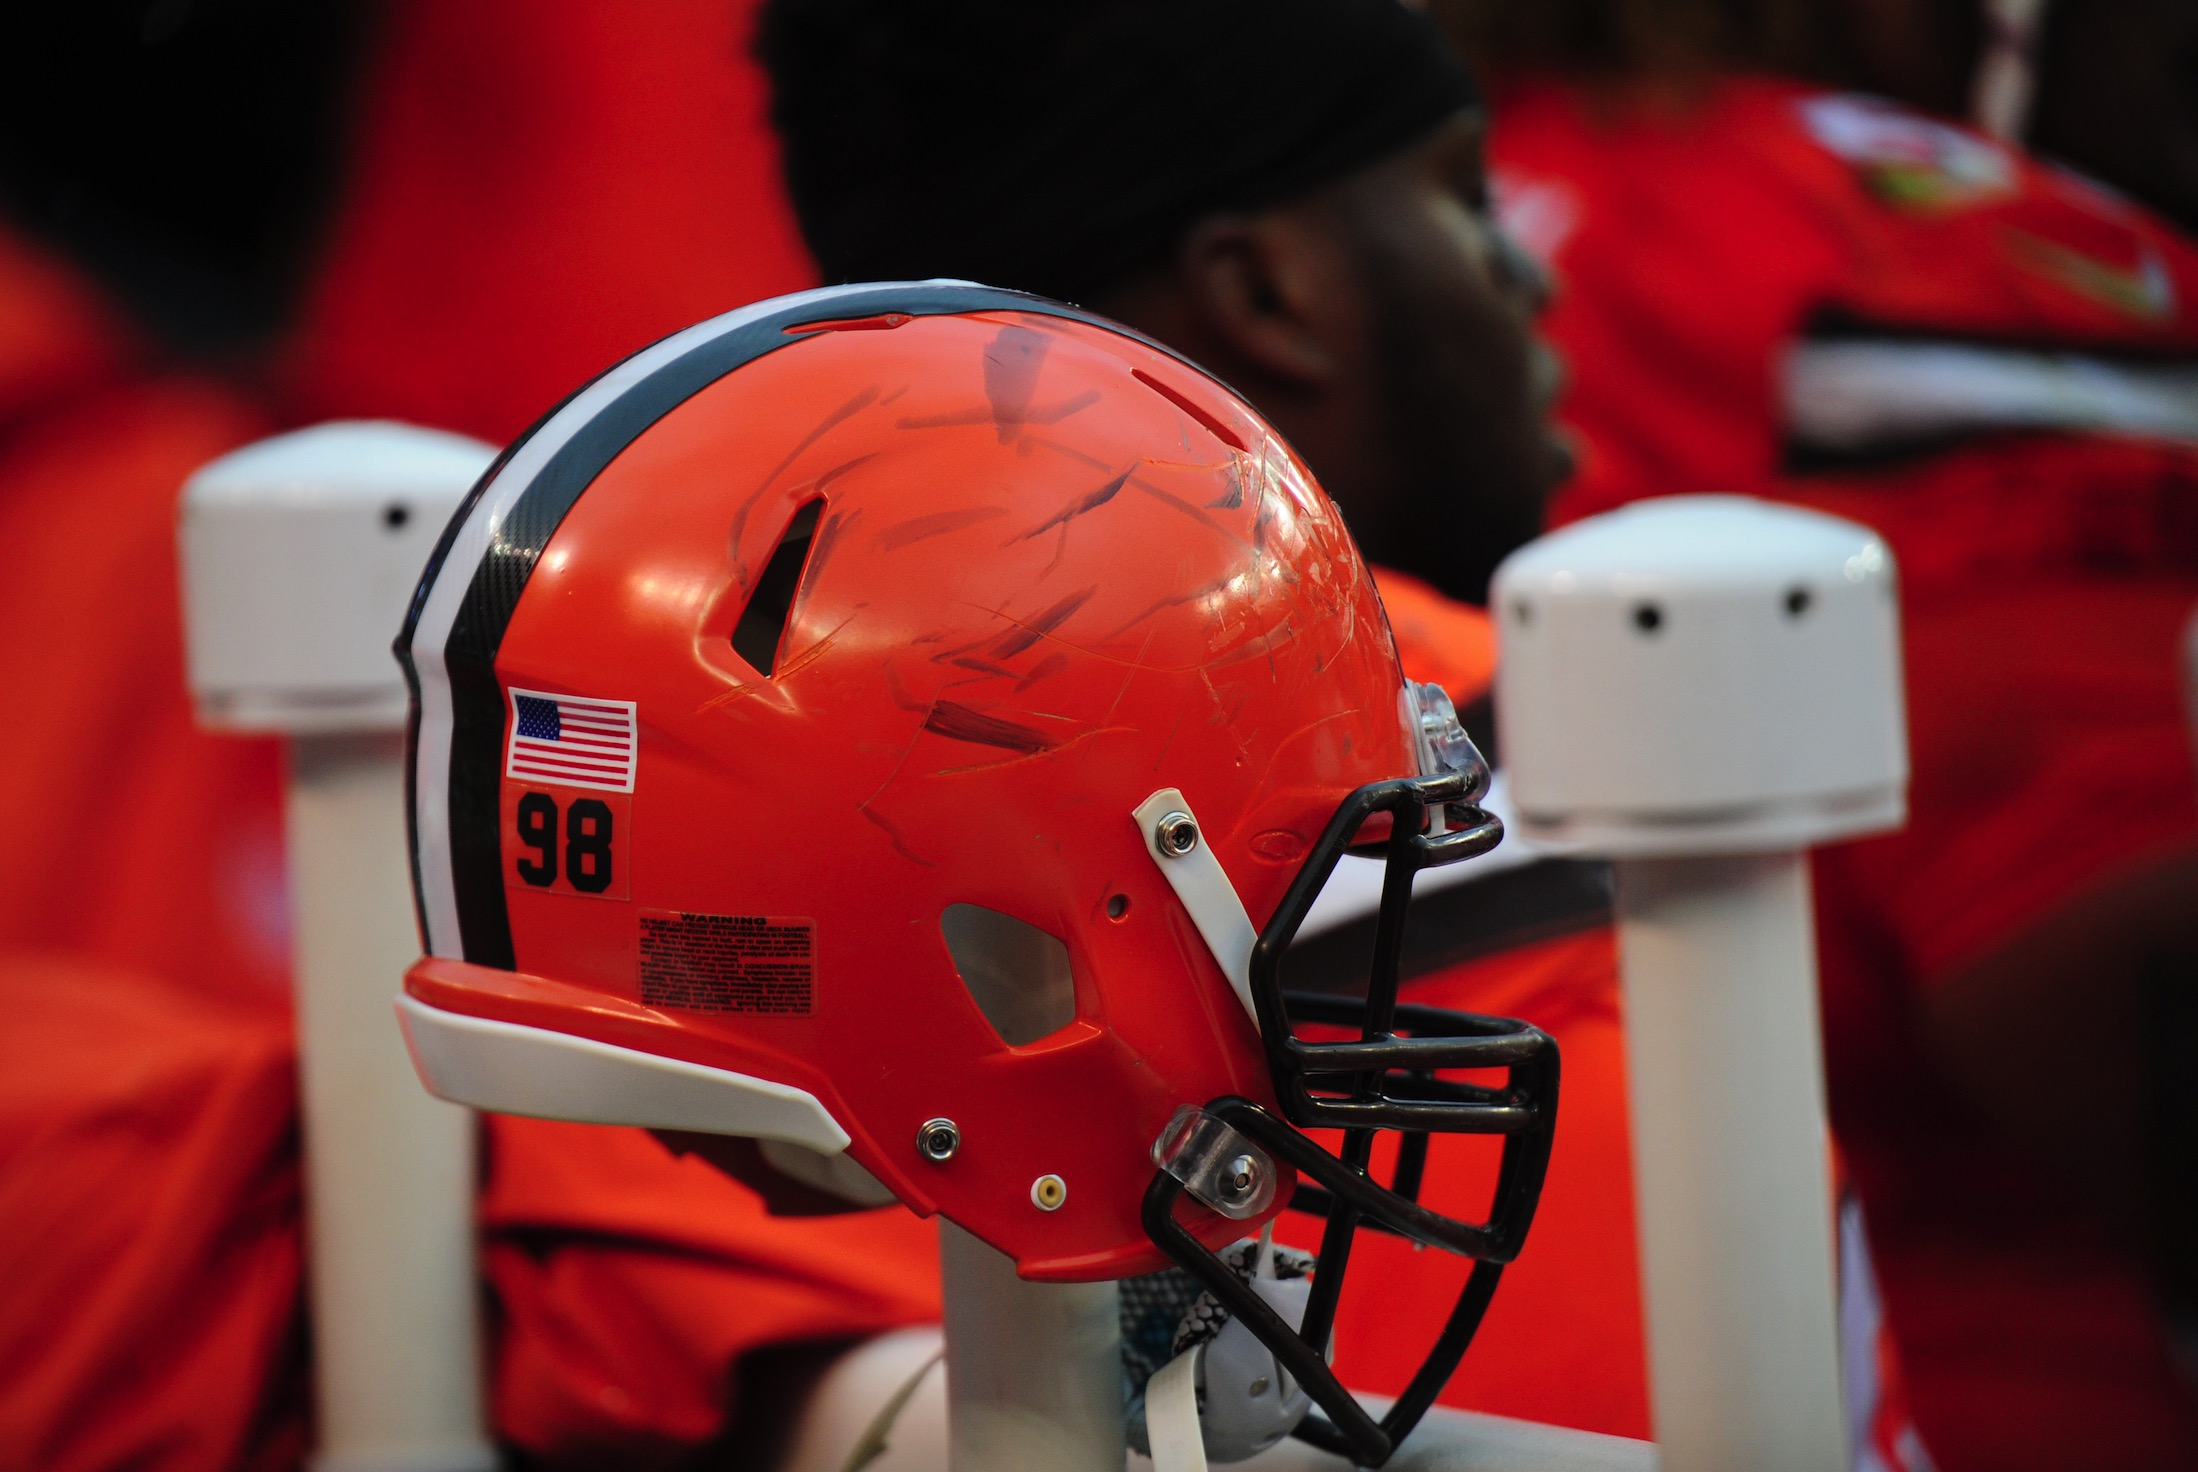 You can tell it was a rough day for the Browns by looking at this helmet.